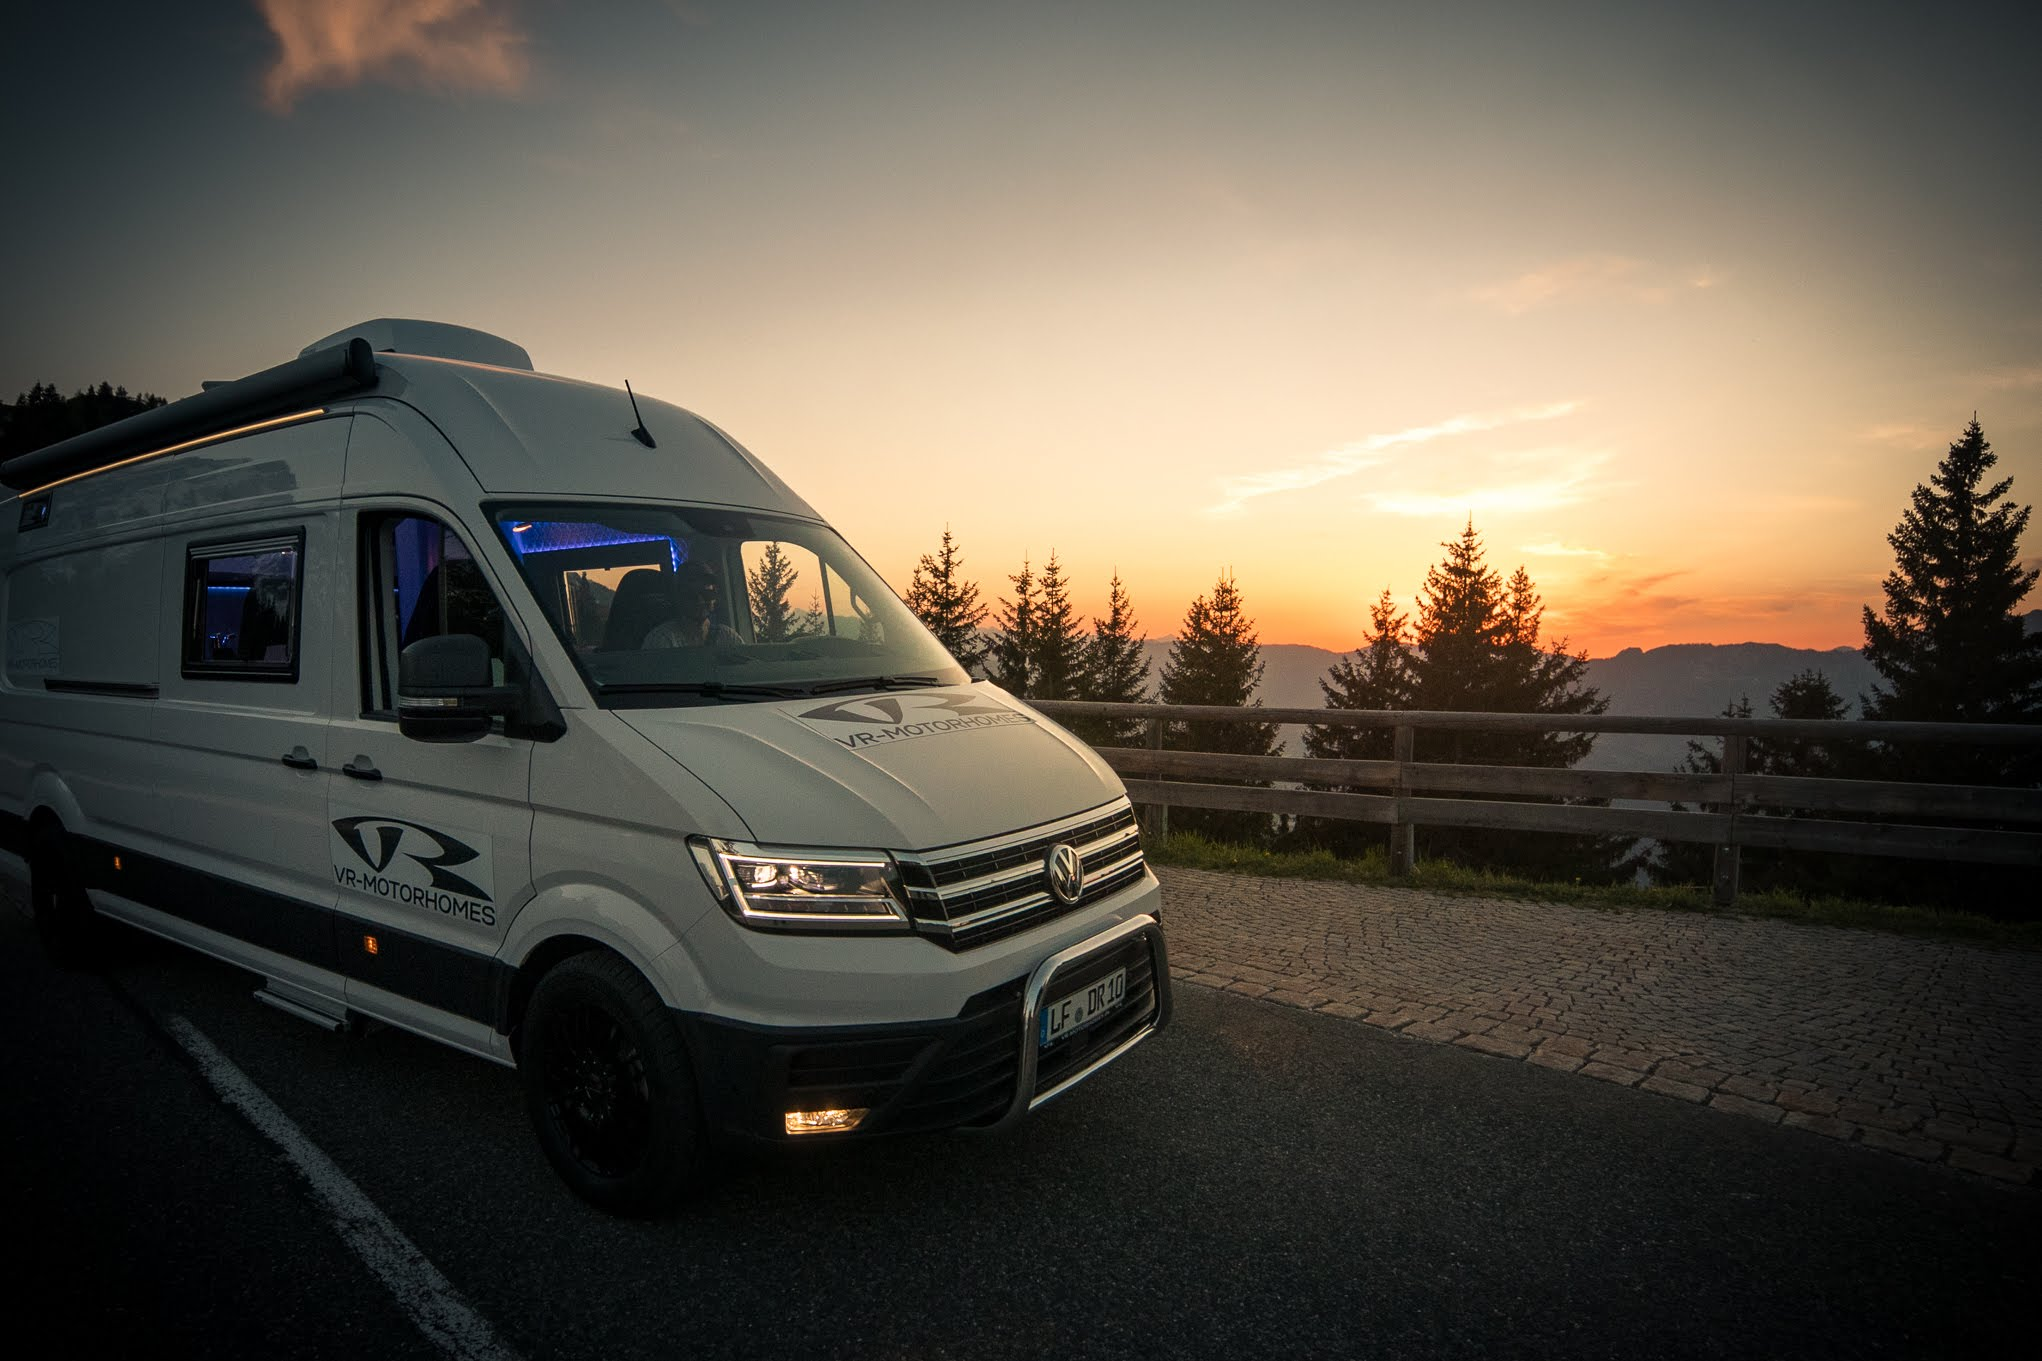 vr-motorhomes vanlife new crafter best in the